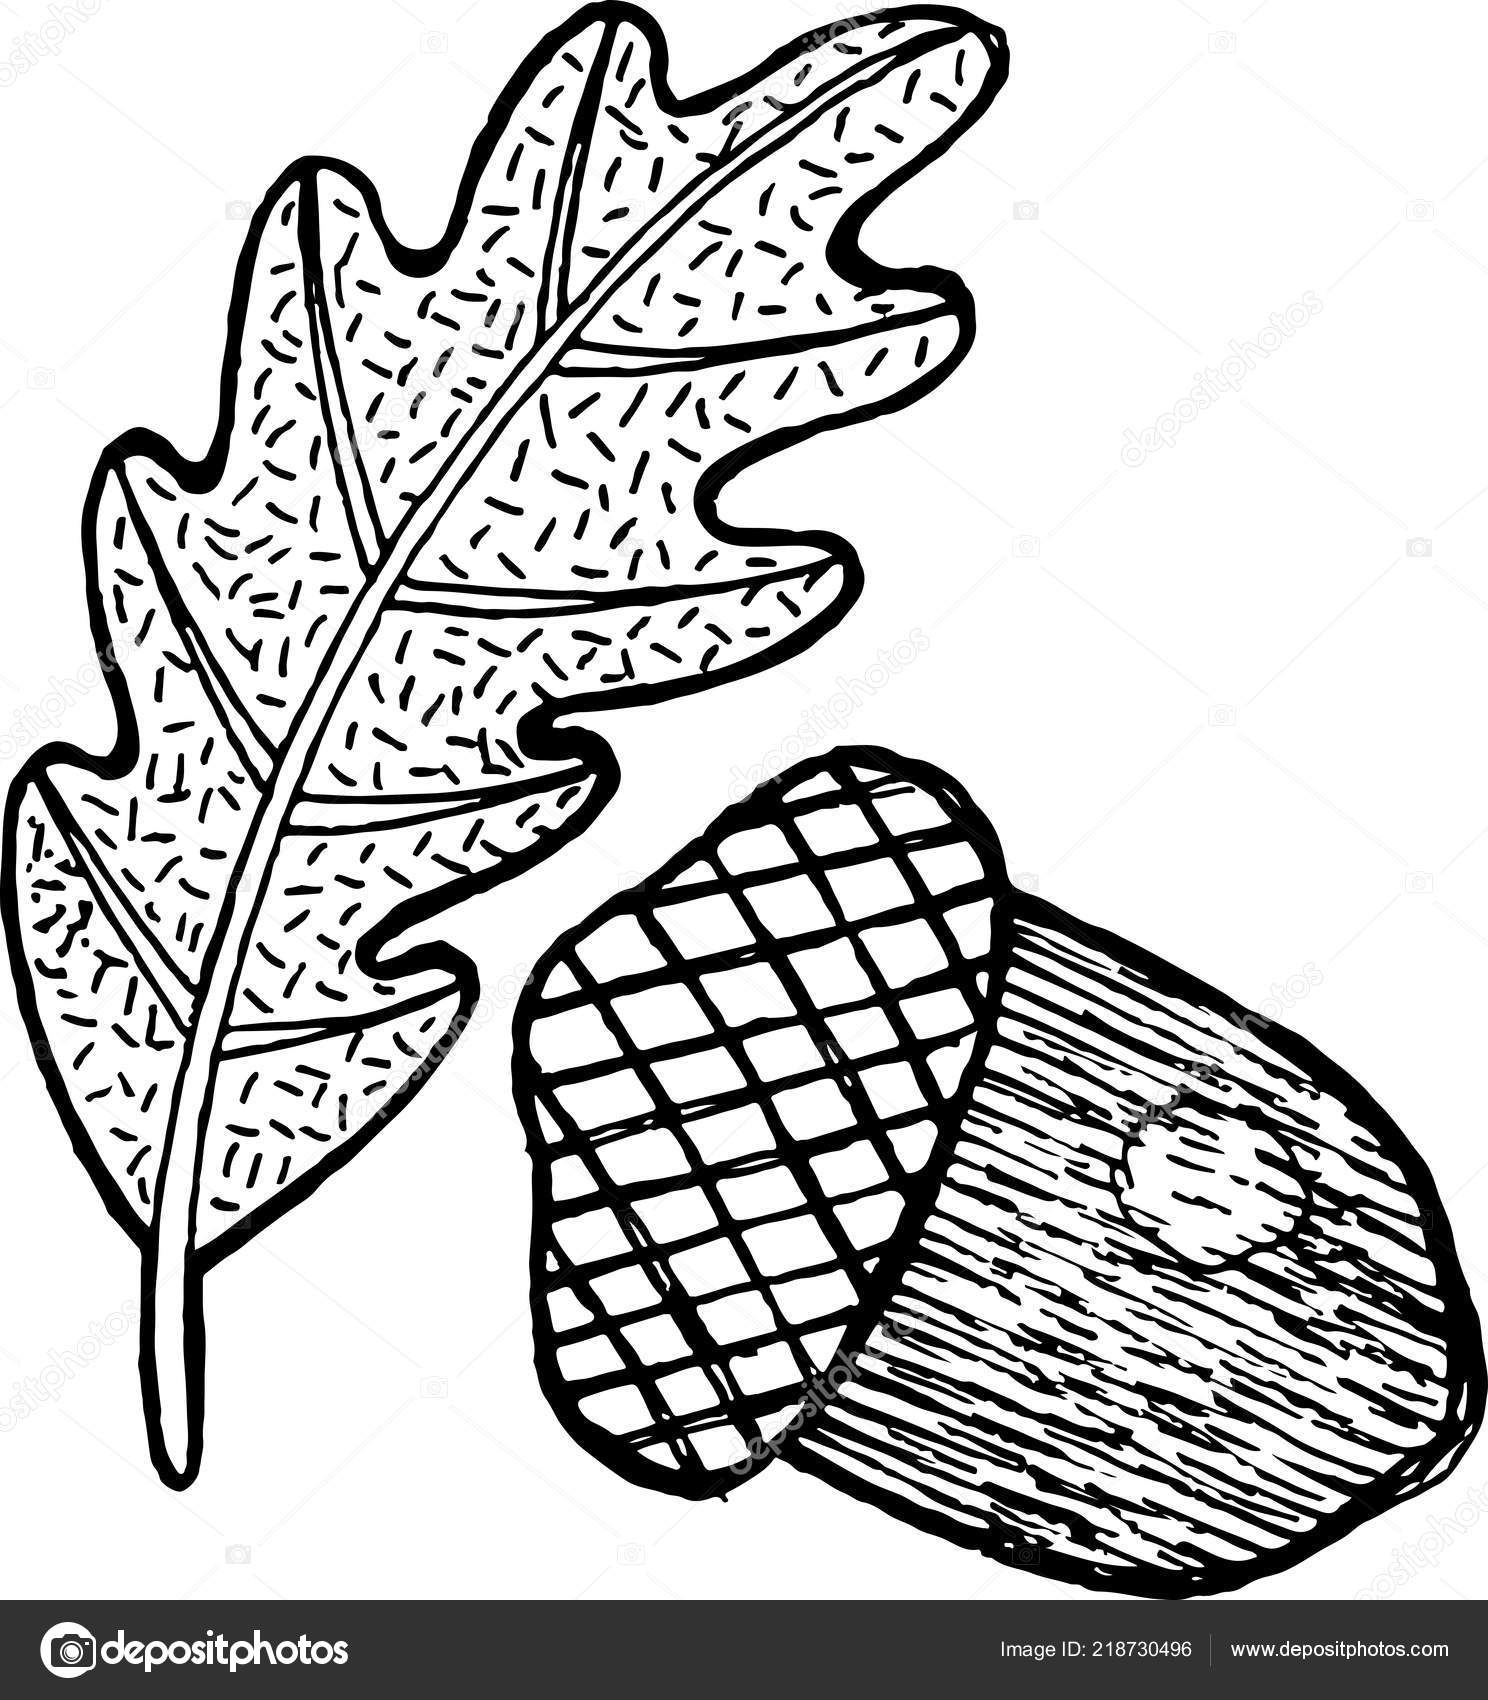 Acorn Coloring Page Adults Ink Graphic Artwork Vector Illustration